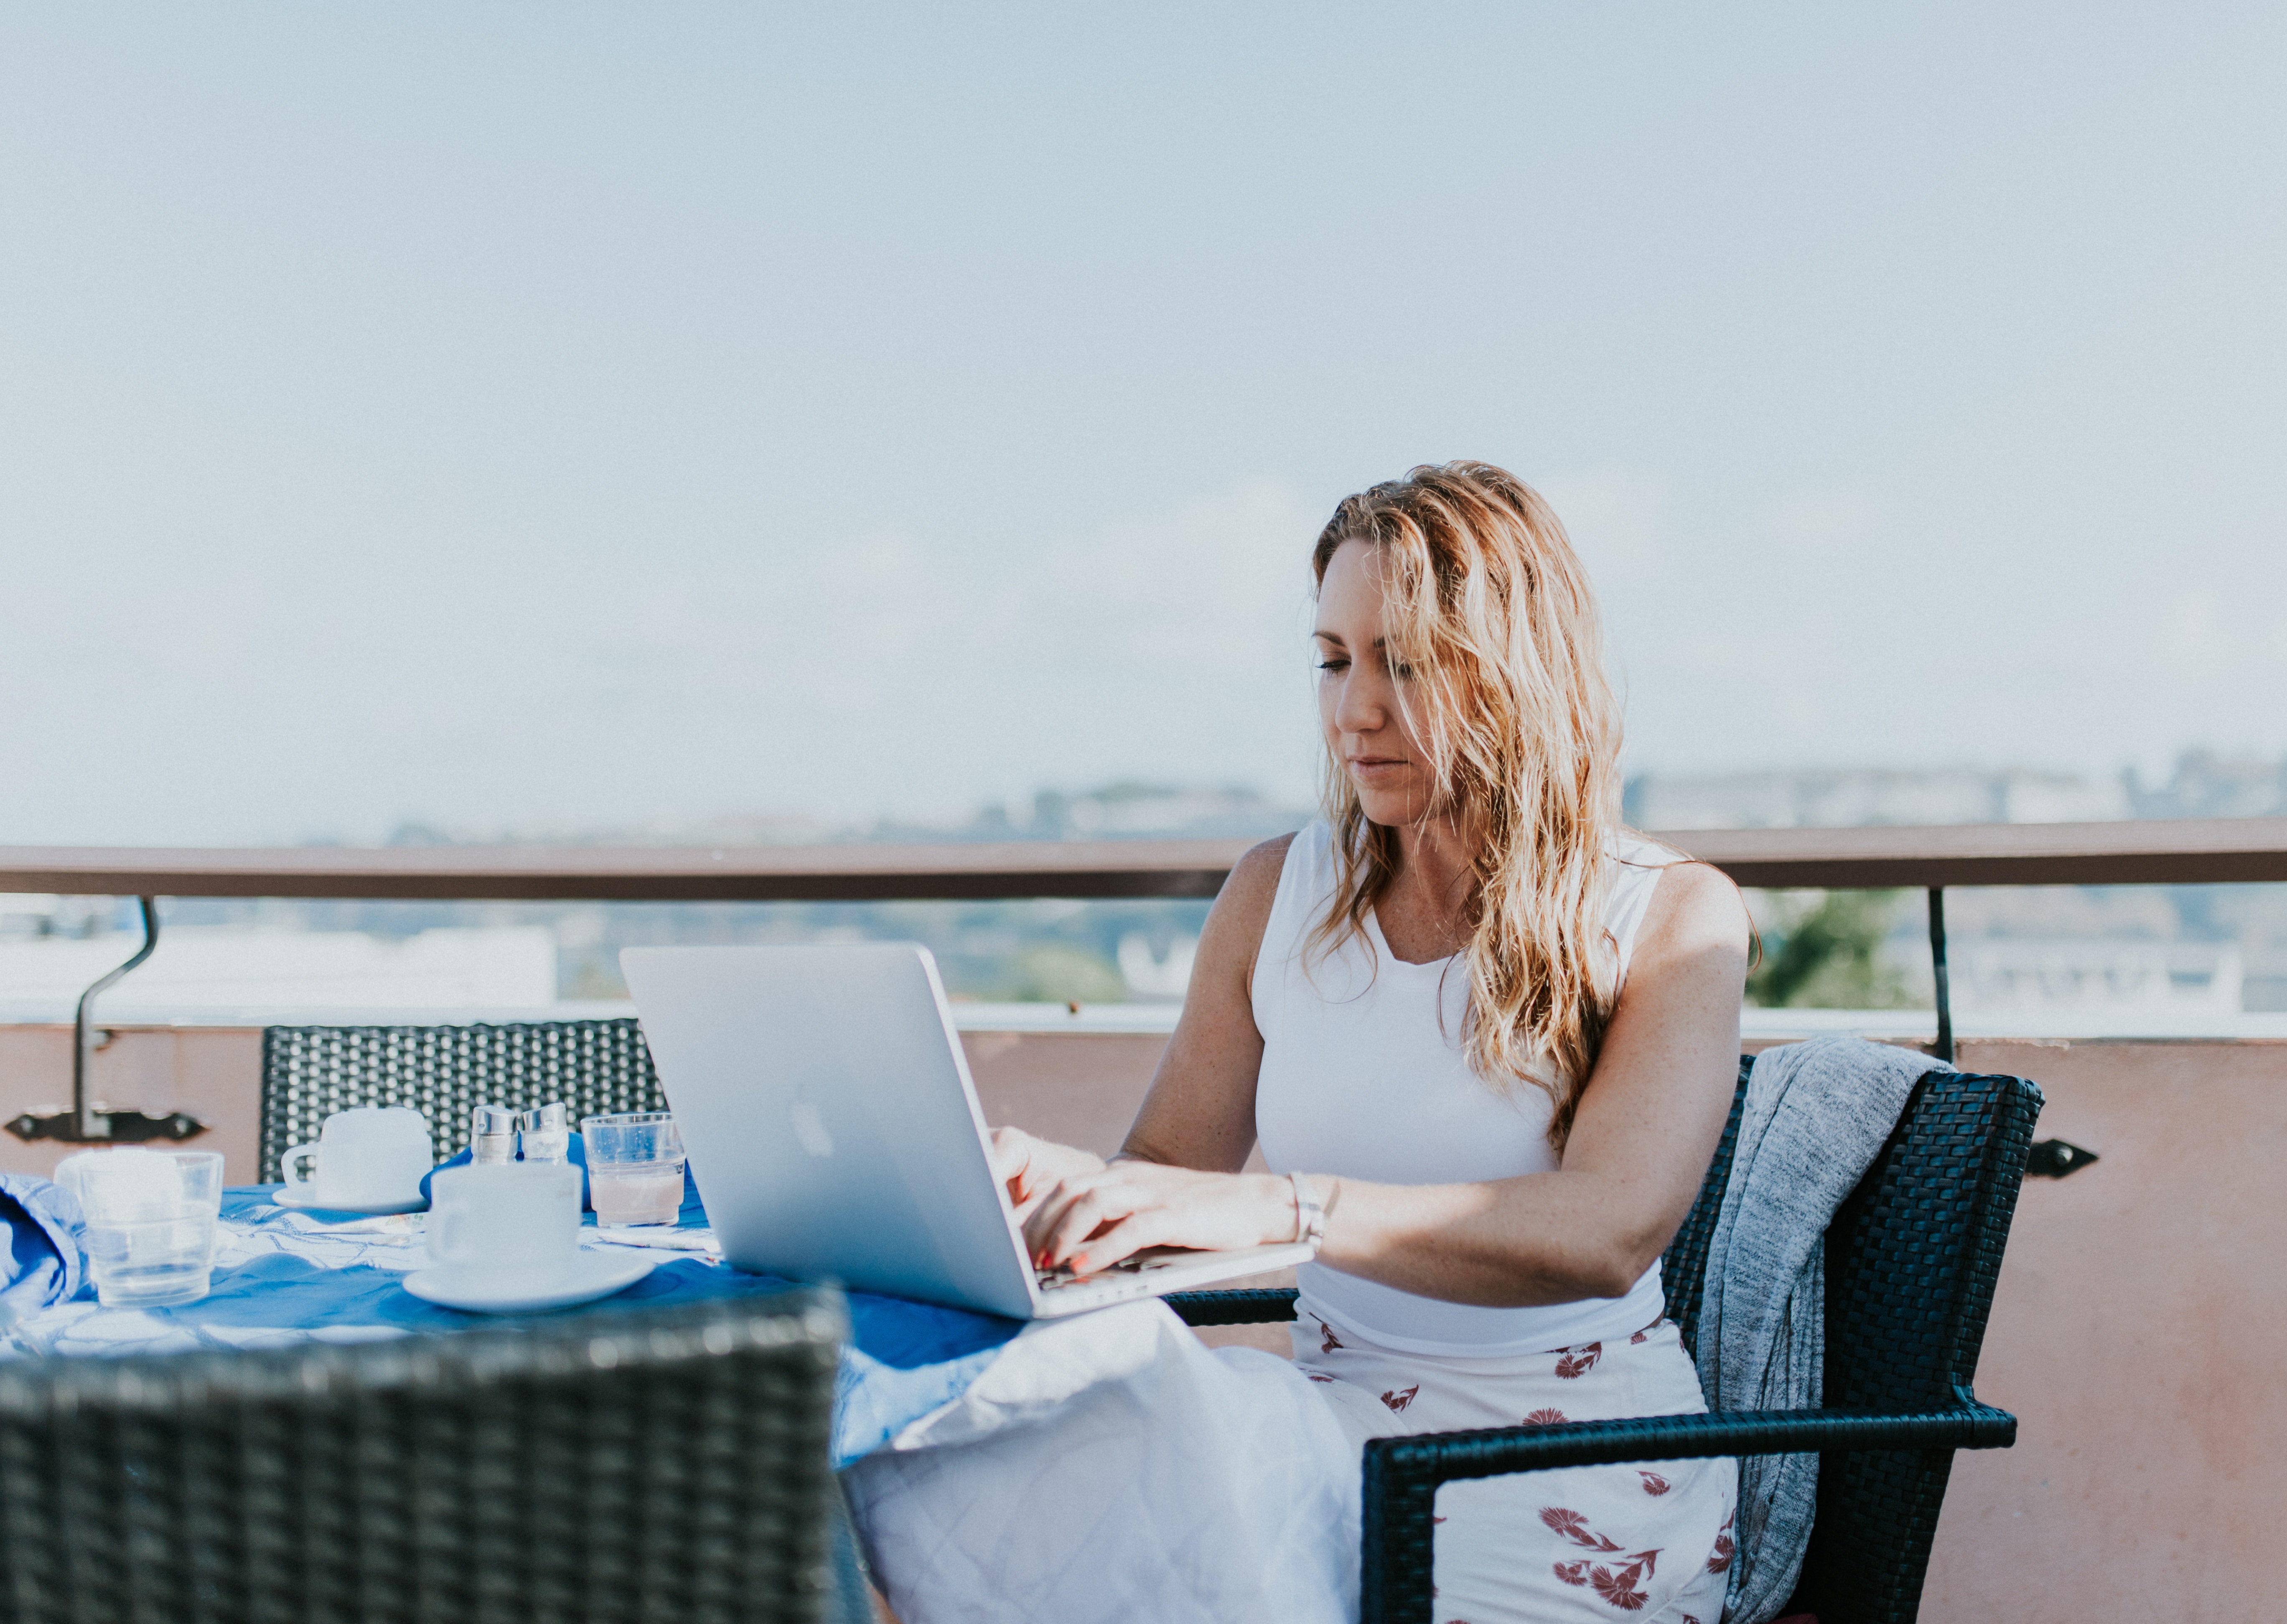 tips for working remotely, digital nomad, girl working at table